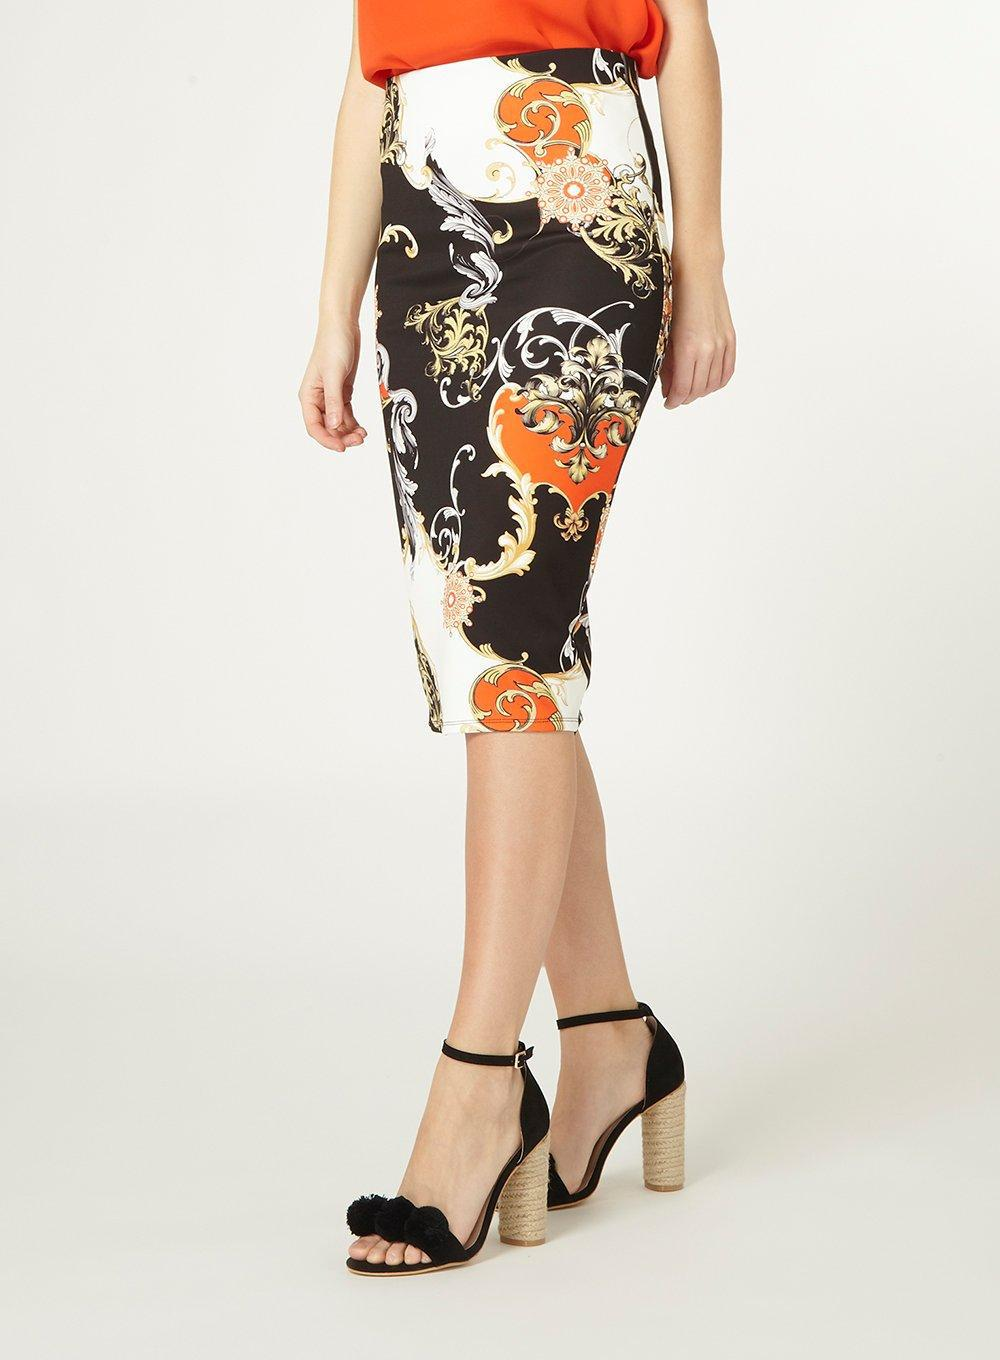 33ffd3c789 Gallery. Previously sold at: Dorothy Perkins · Women's Printed Skirts  Women's Pencil ...